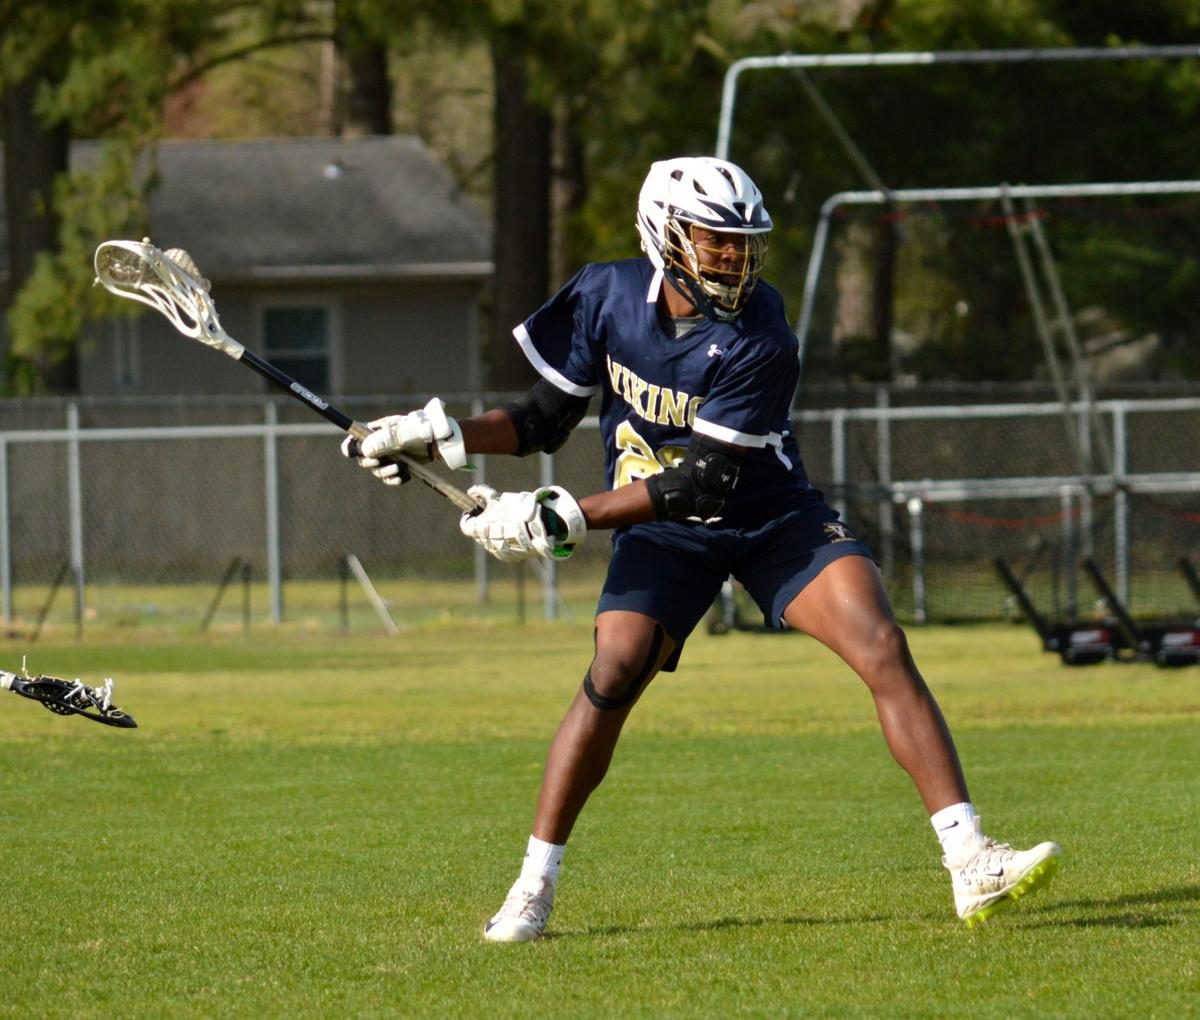 High School Lacrosse: Cambridge-South Dorchester at Wicomico